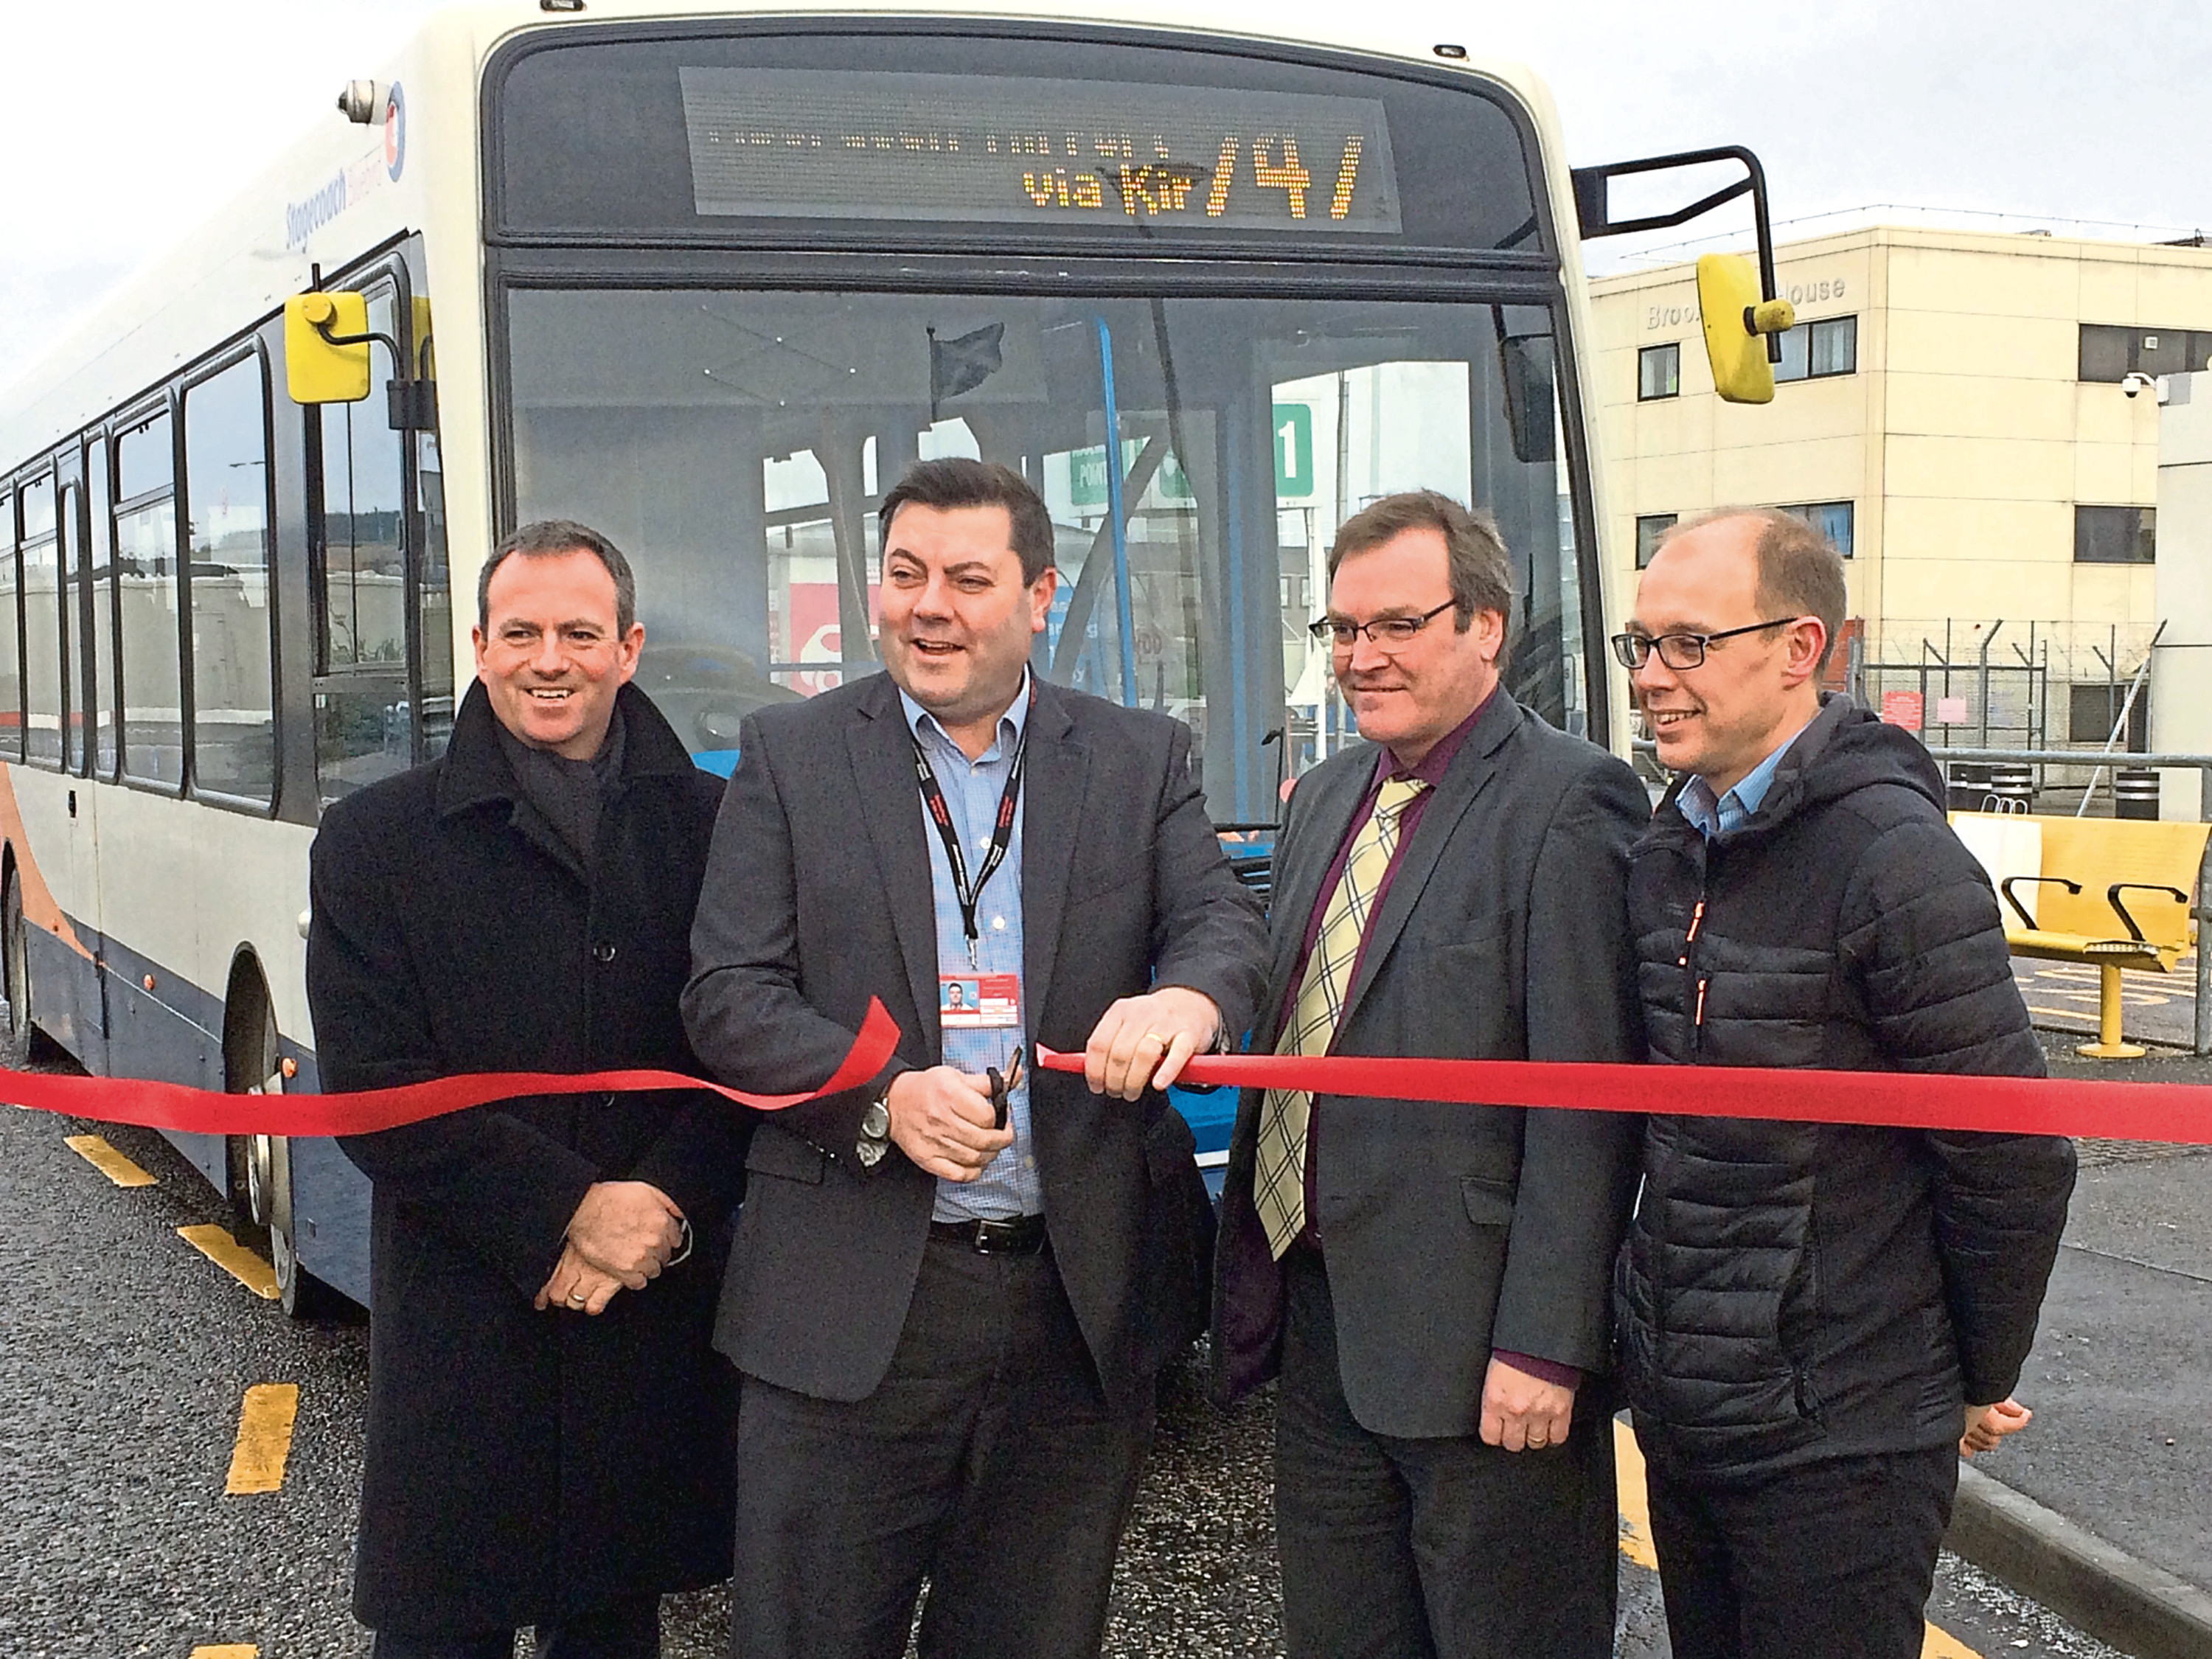 David Liston, Steve Szalay, Derrick Murray and Greig MacKay at the launch of the new bus services to the airport